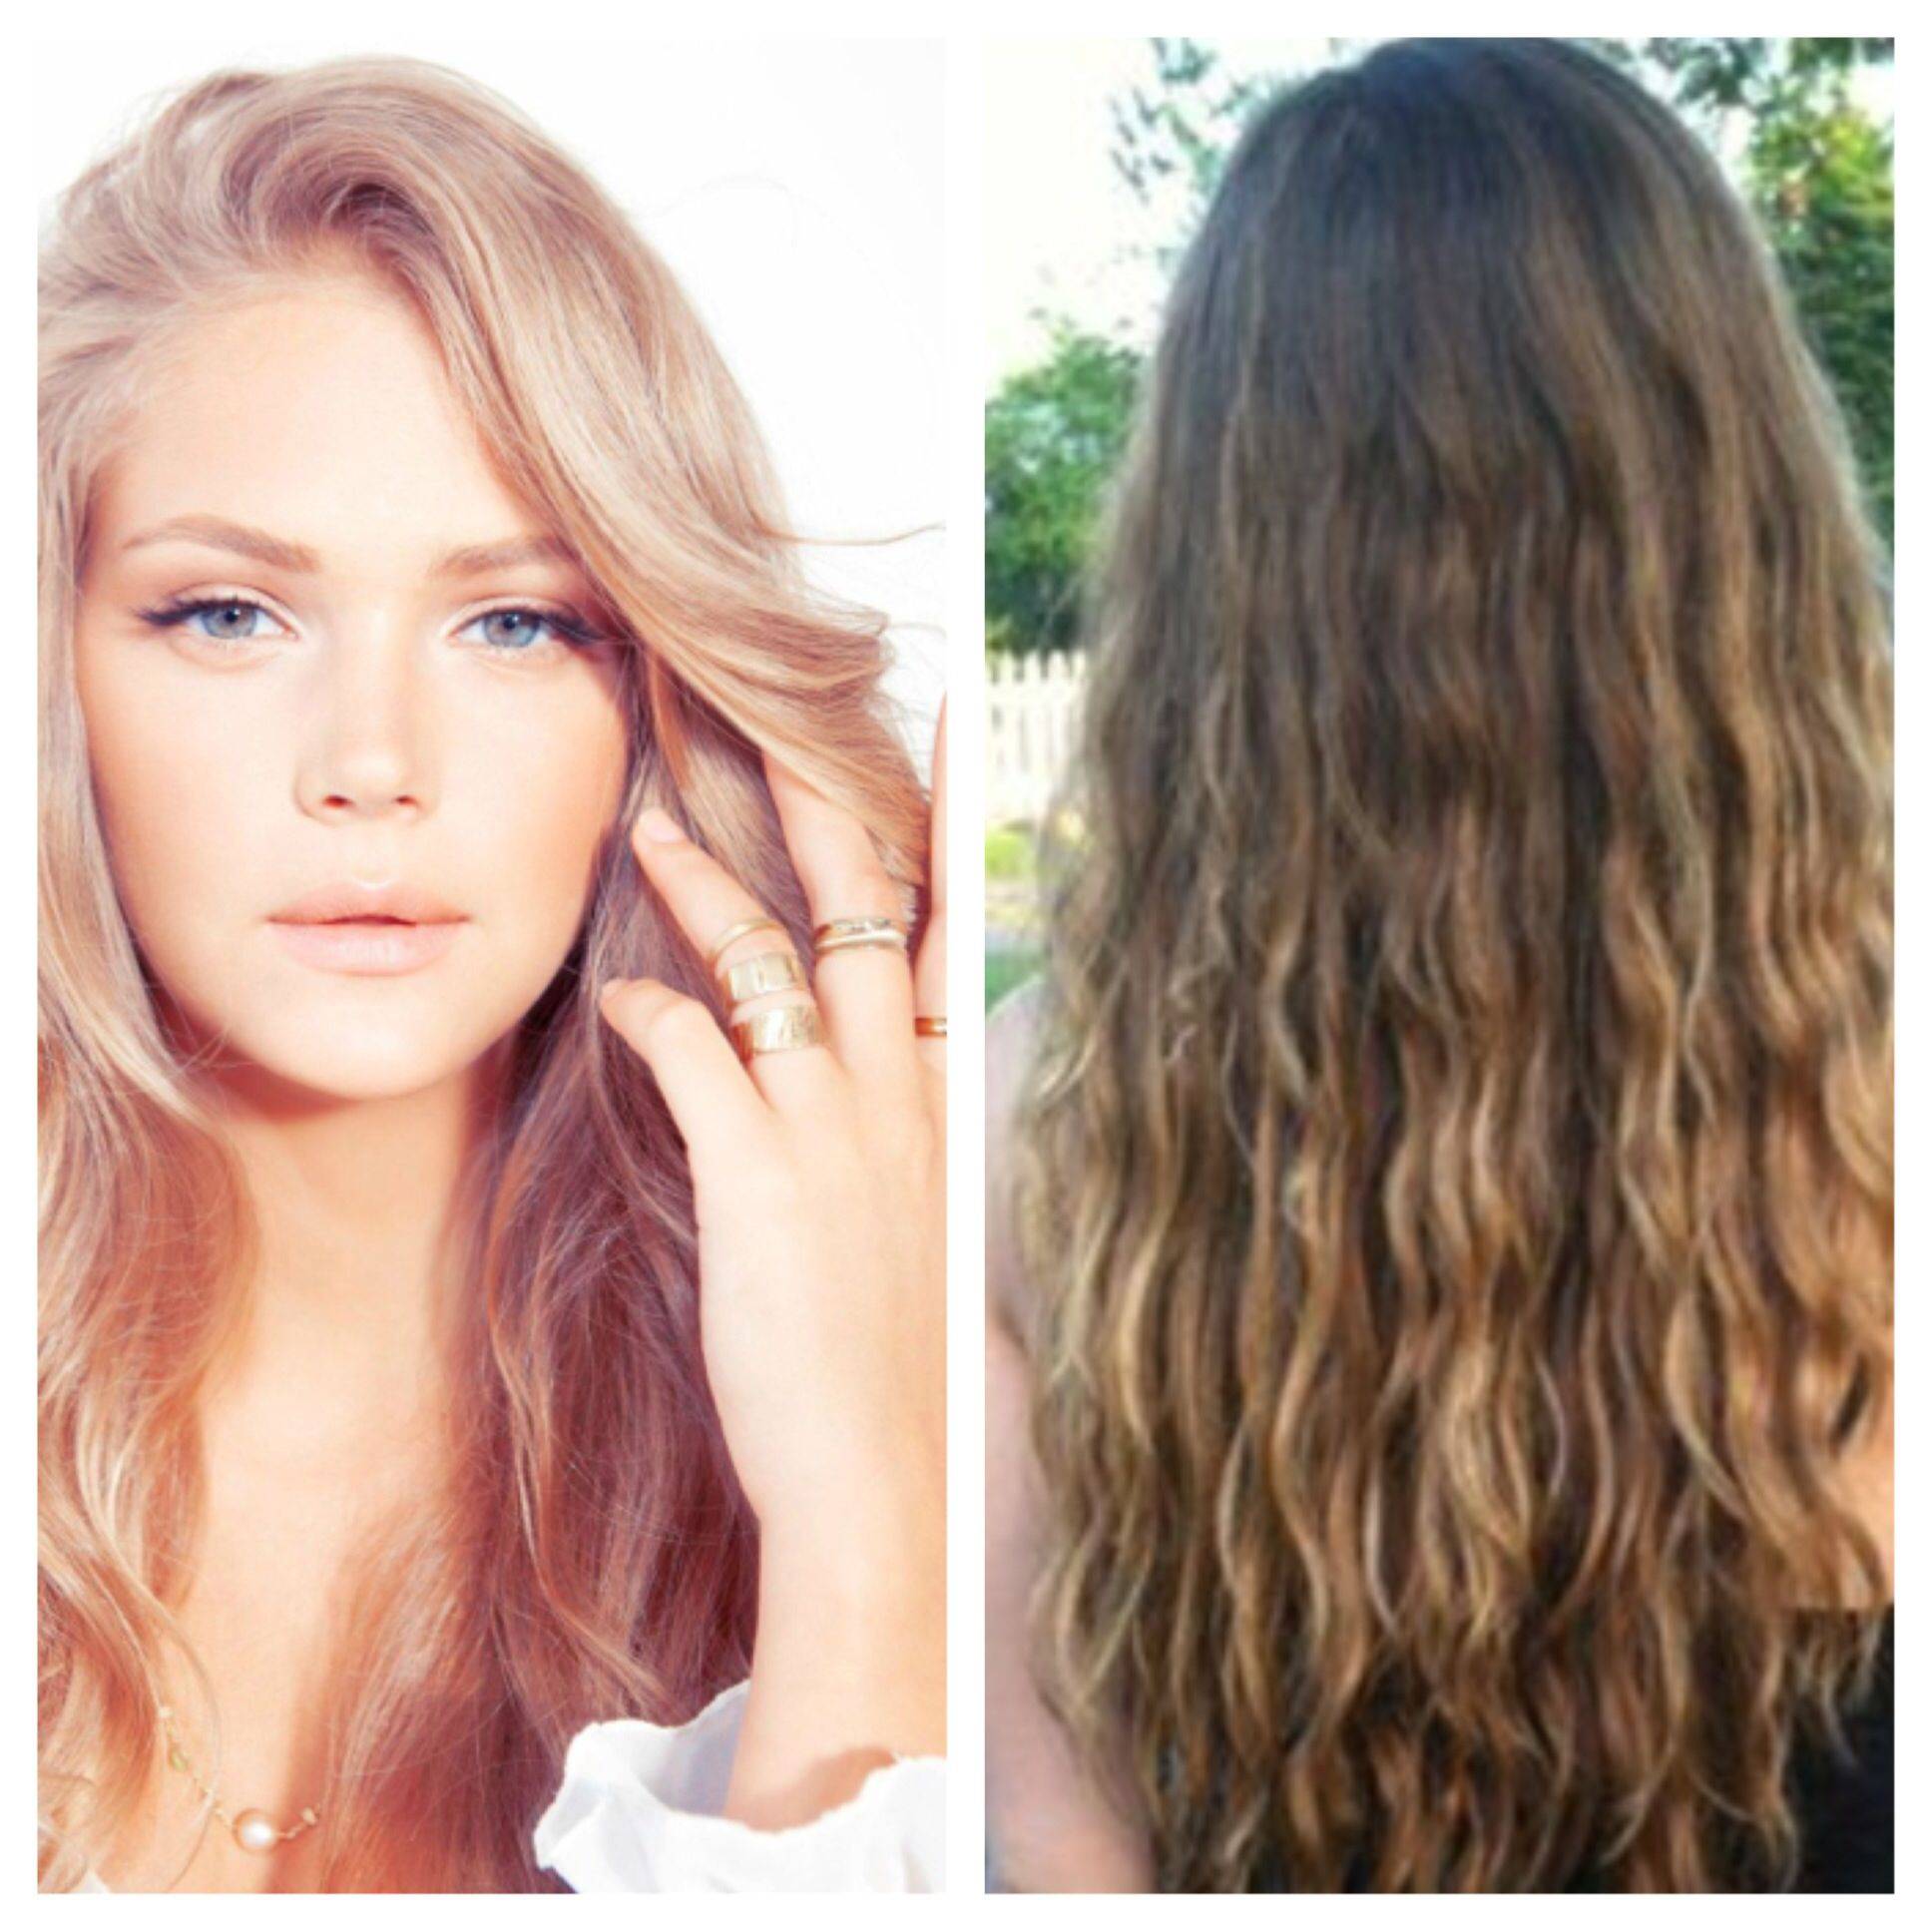 new summer hairstyle- red-blonde dye or beach wave perm? | hair